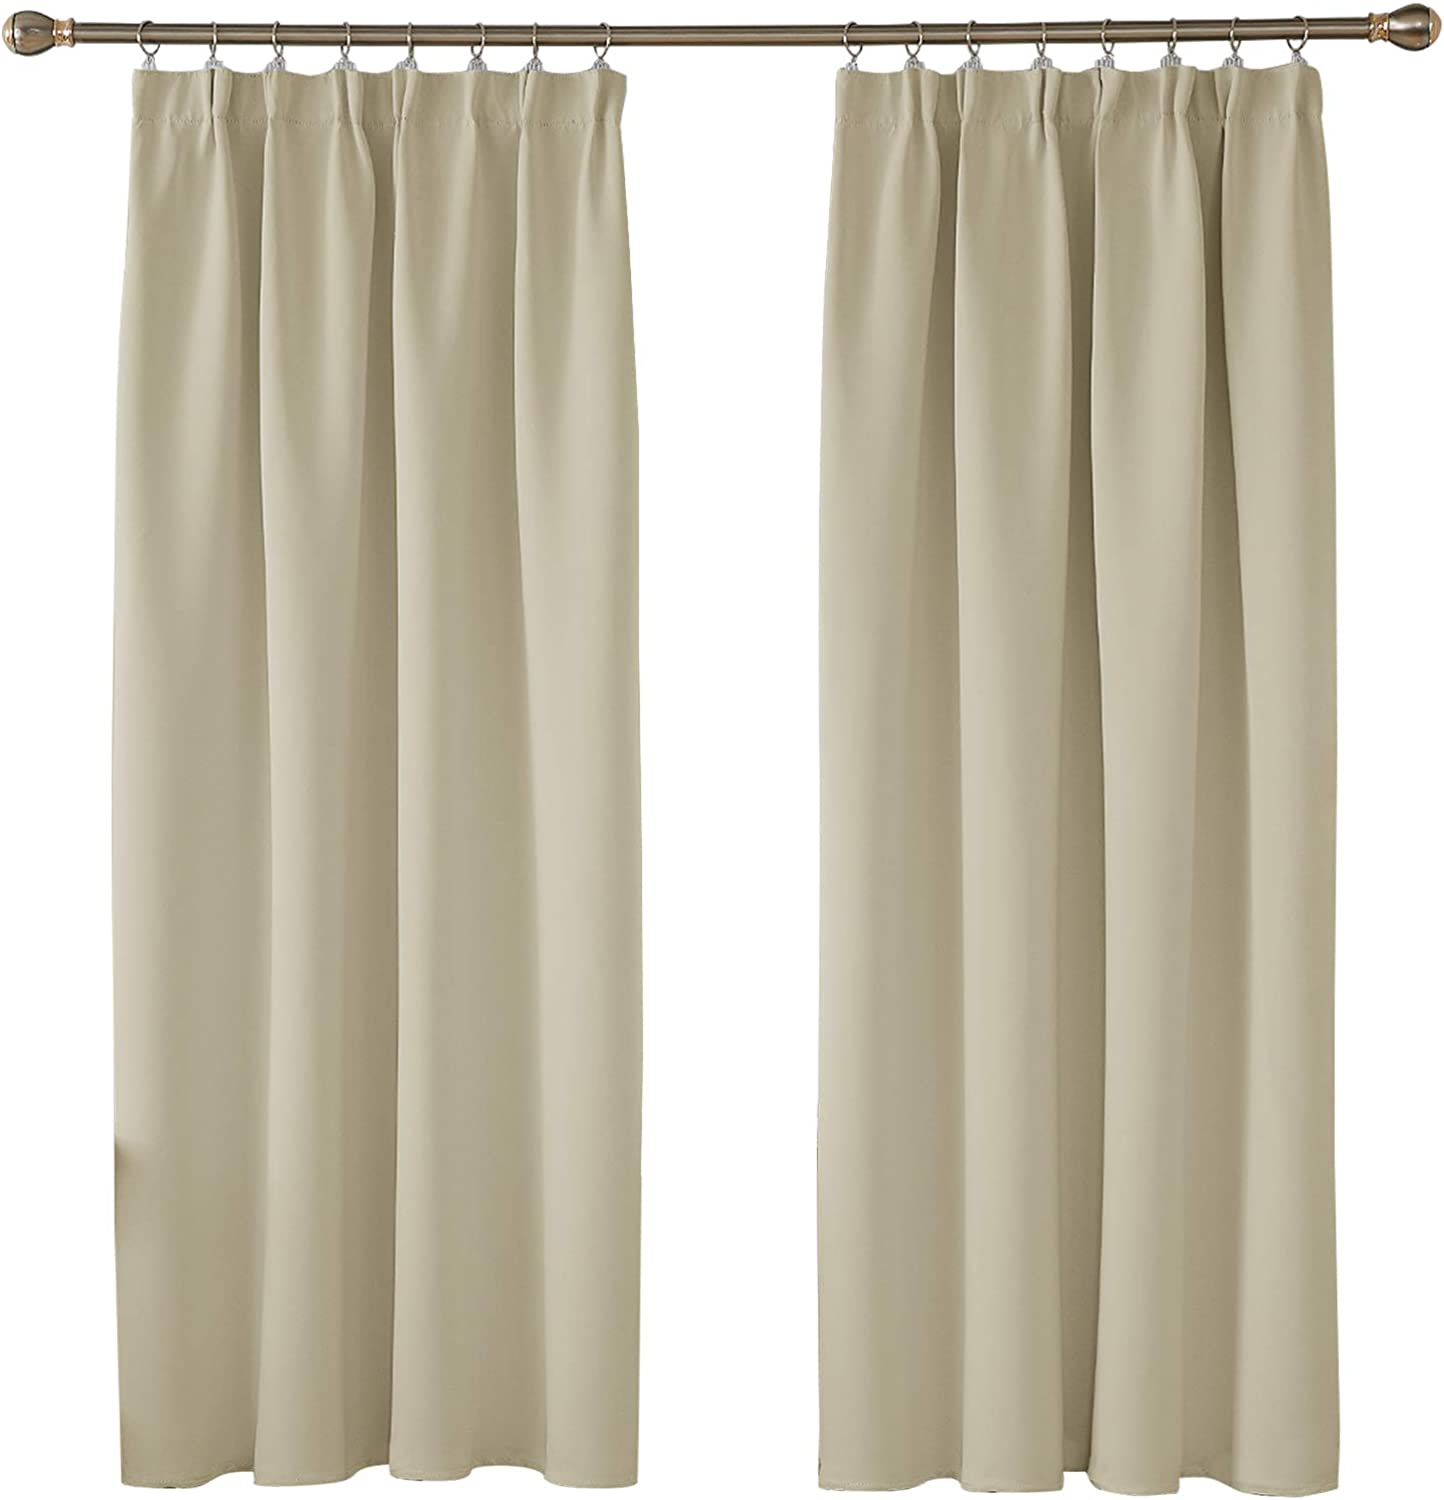 Deconovo Solid Curtains Thermal Insulated Tape Top Blackout Curtains For Boys Room 66 X 54 Beige Two Panels Amazon Co Uk Kitchen Home